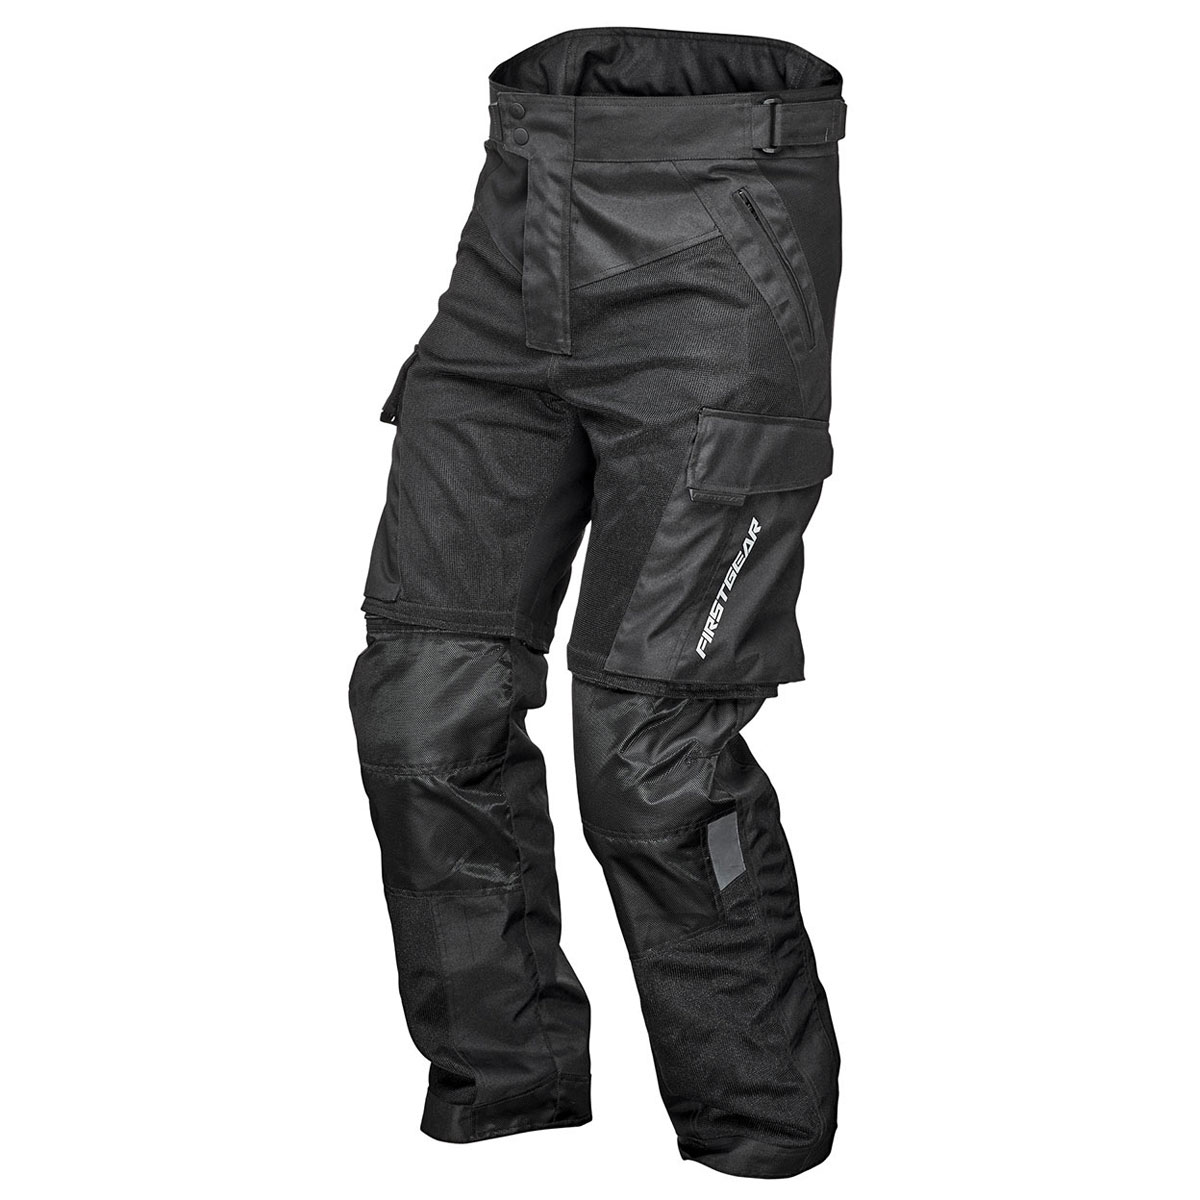 Firstgear Men's Panamint Mesh Riding Black Pants